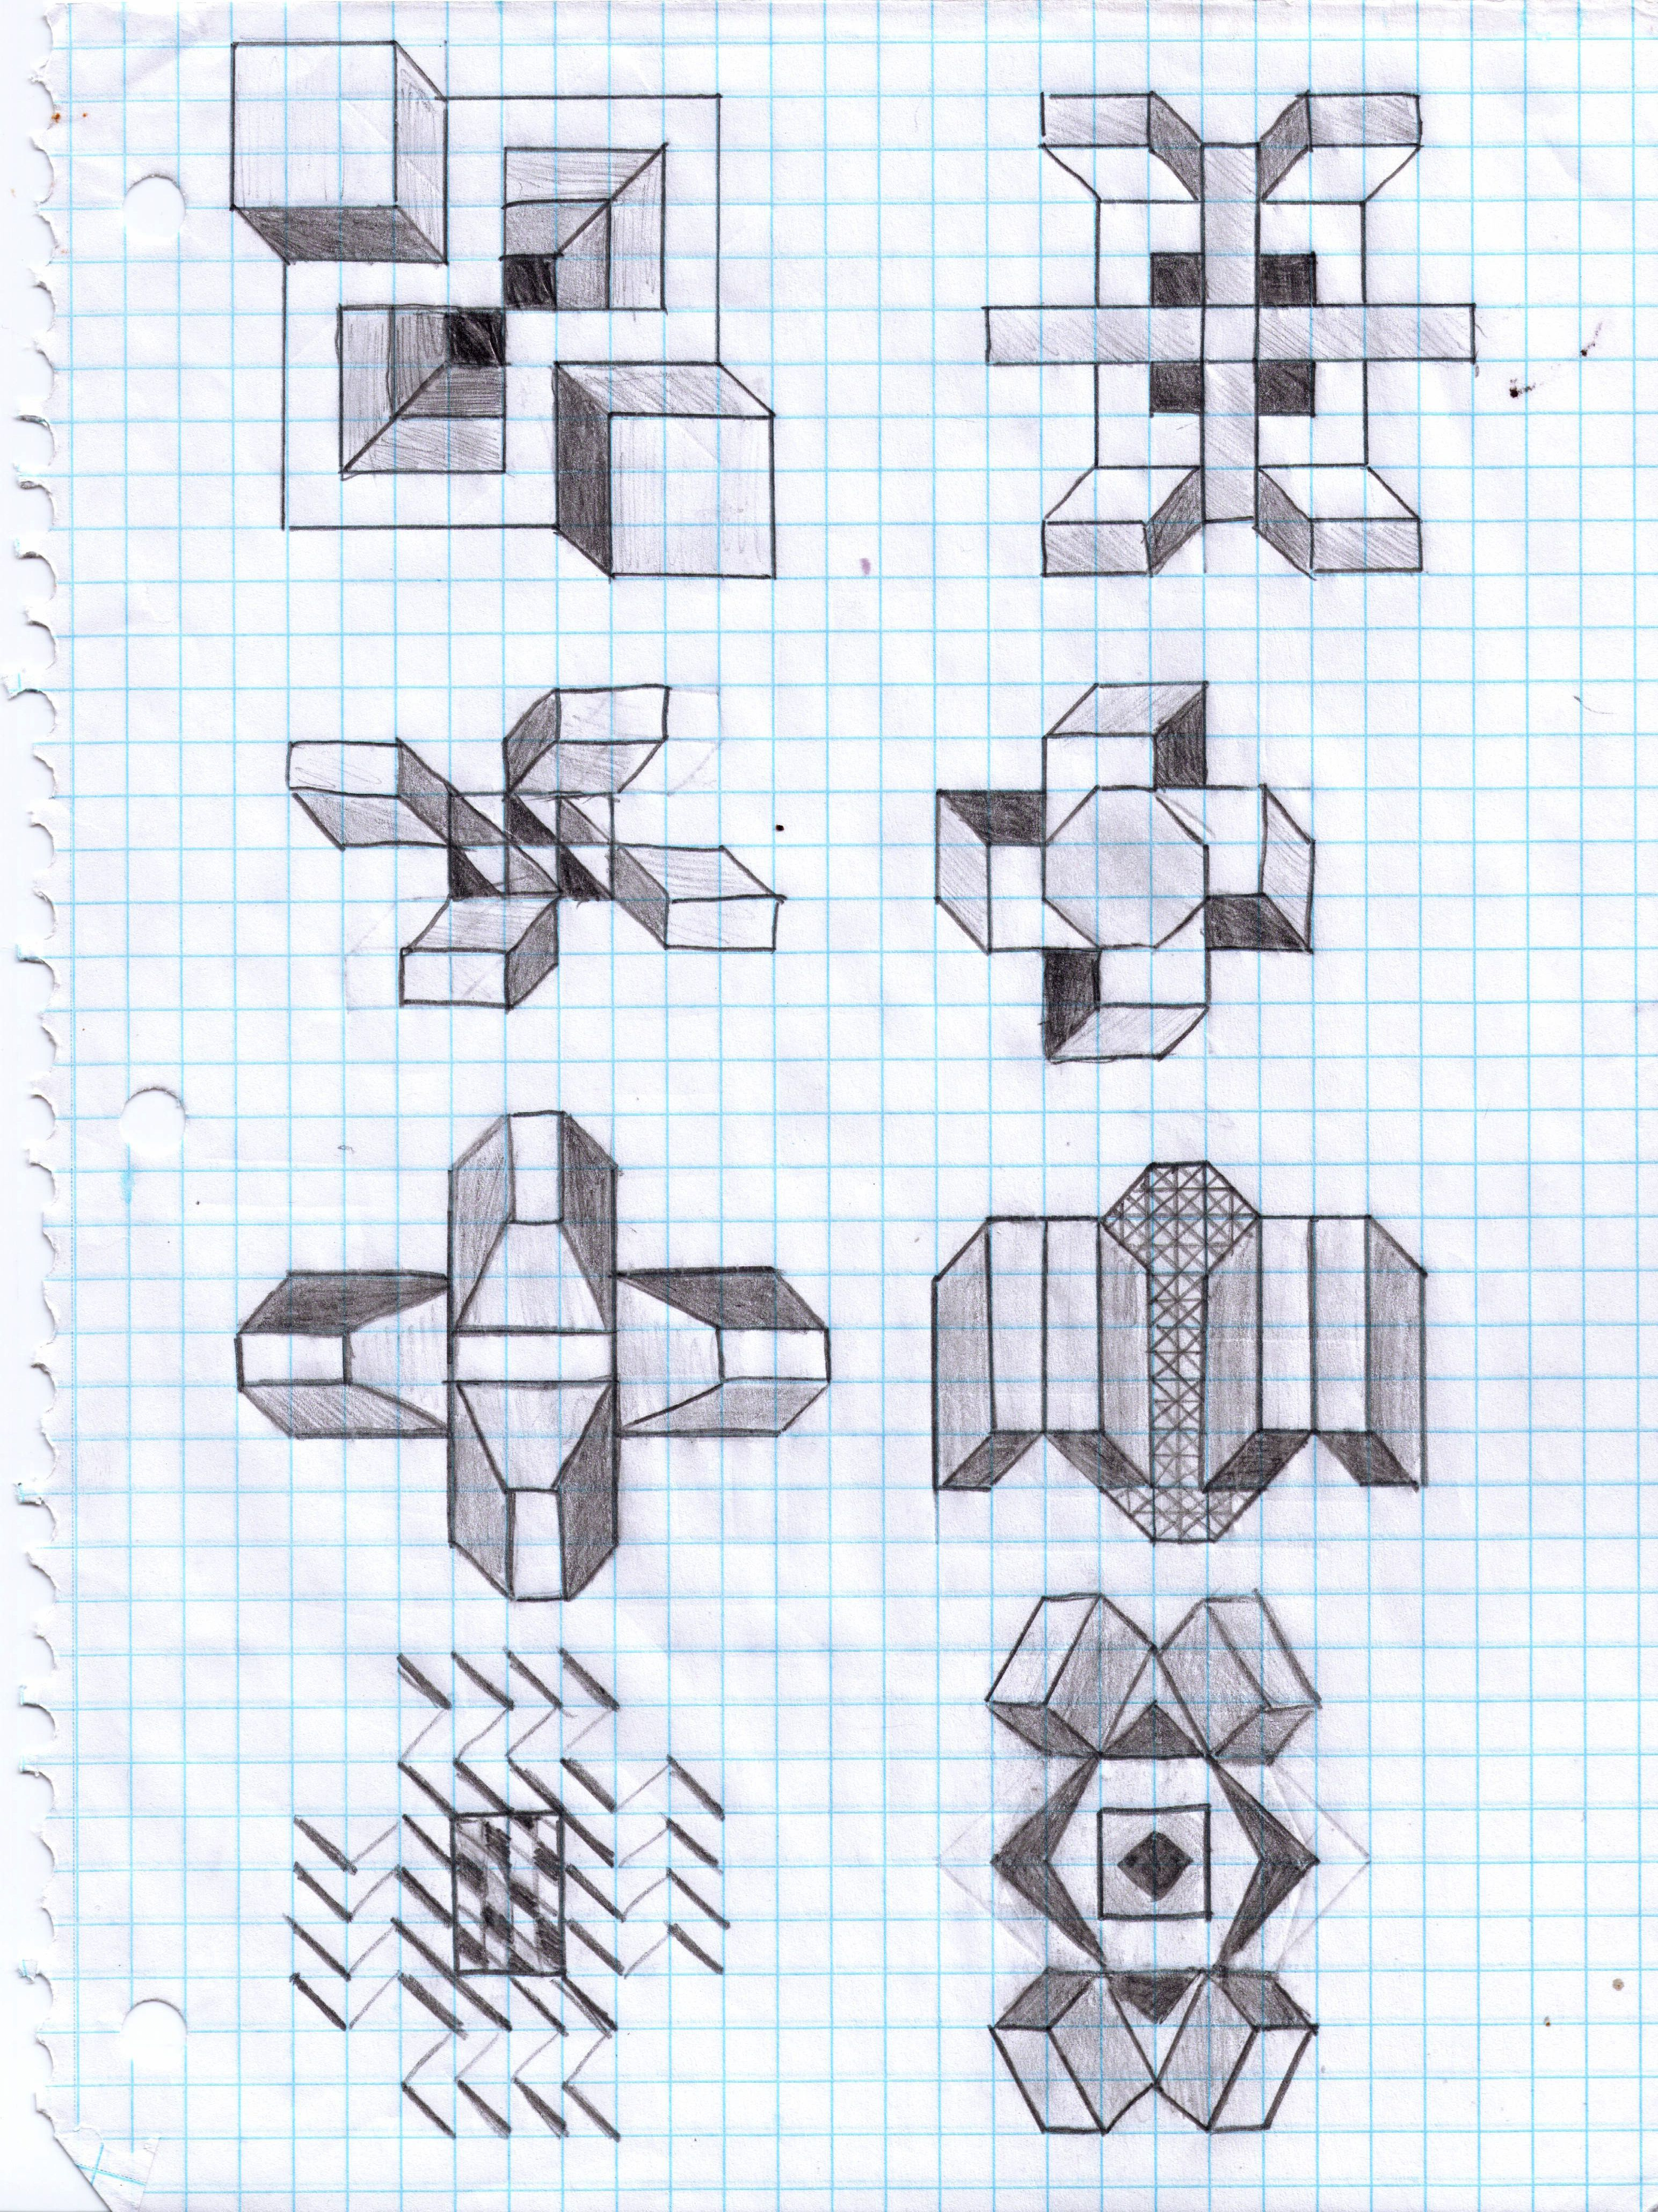 cool things to draw on graph paper